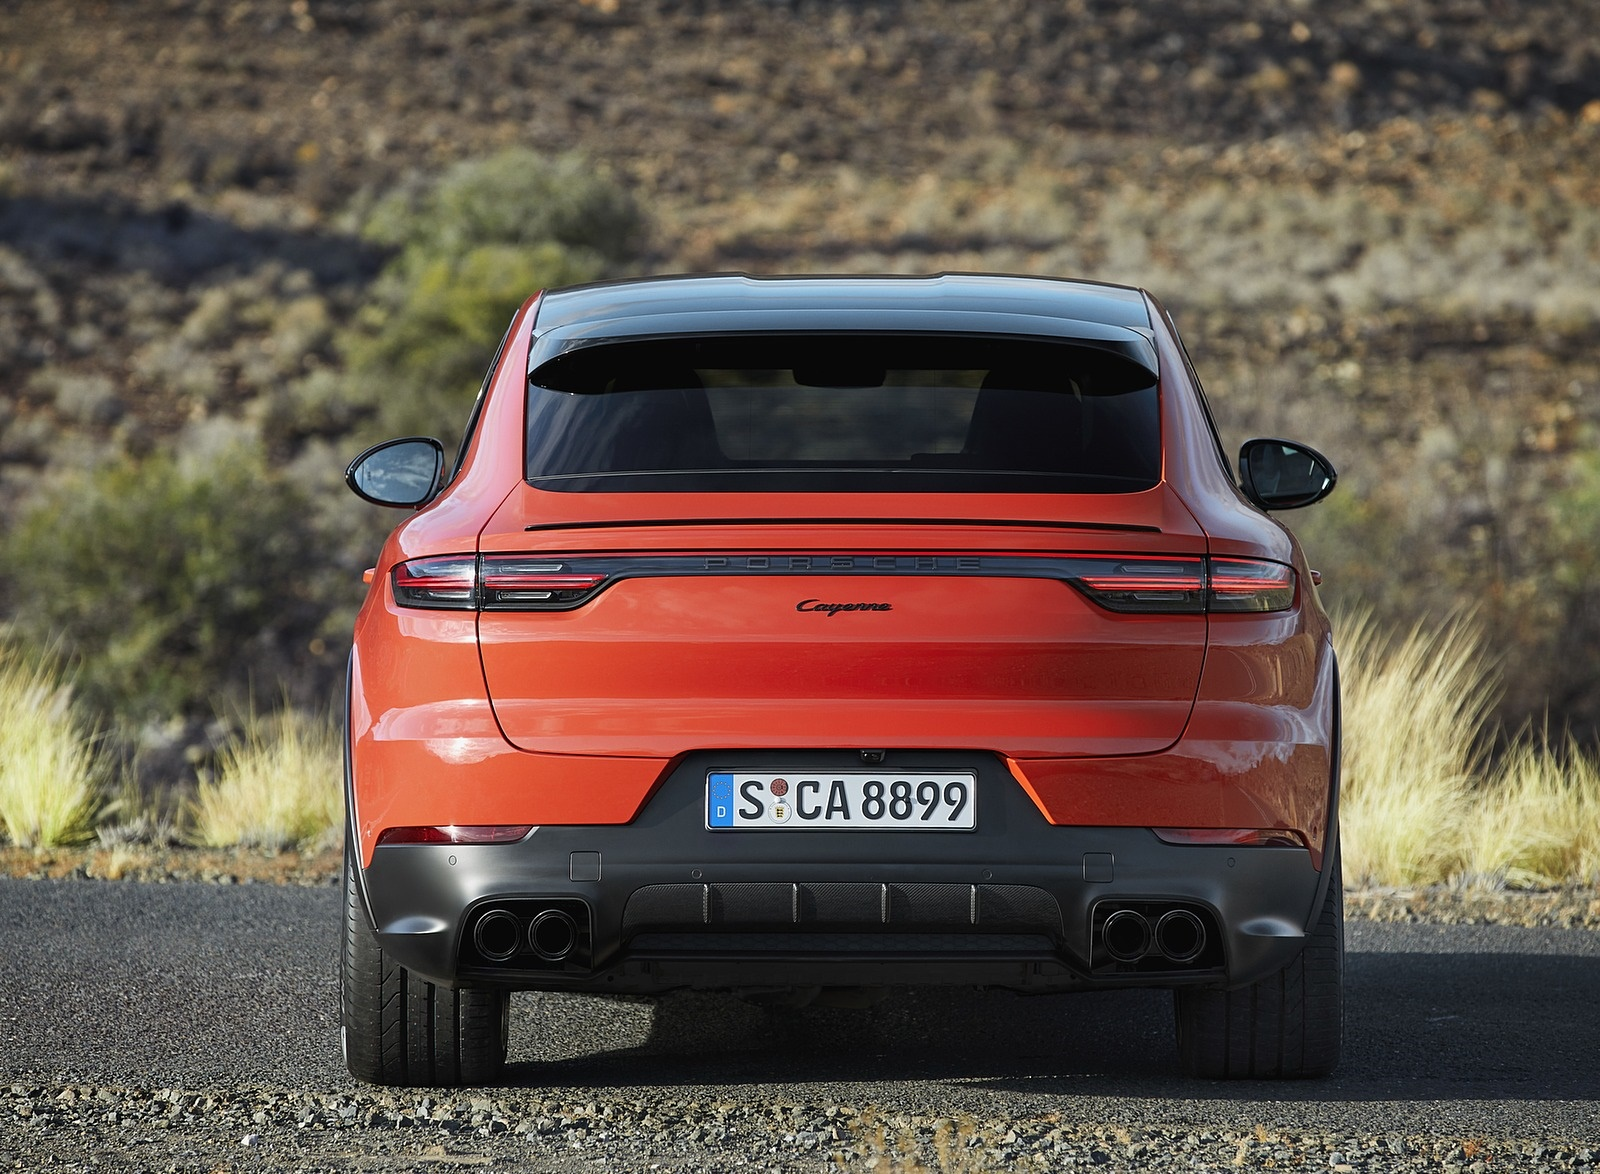 2020 Porsche Cayenne Coupe Rear Wallpaper (12)